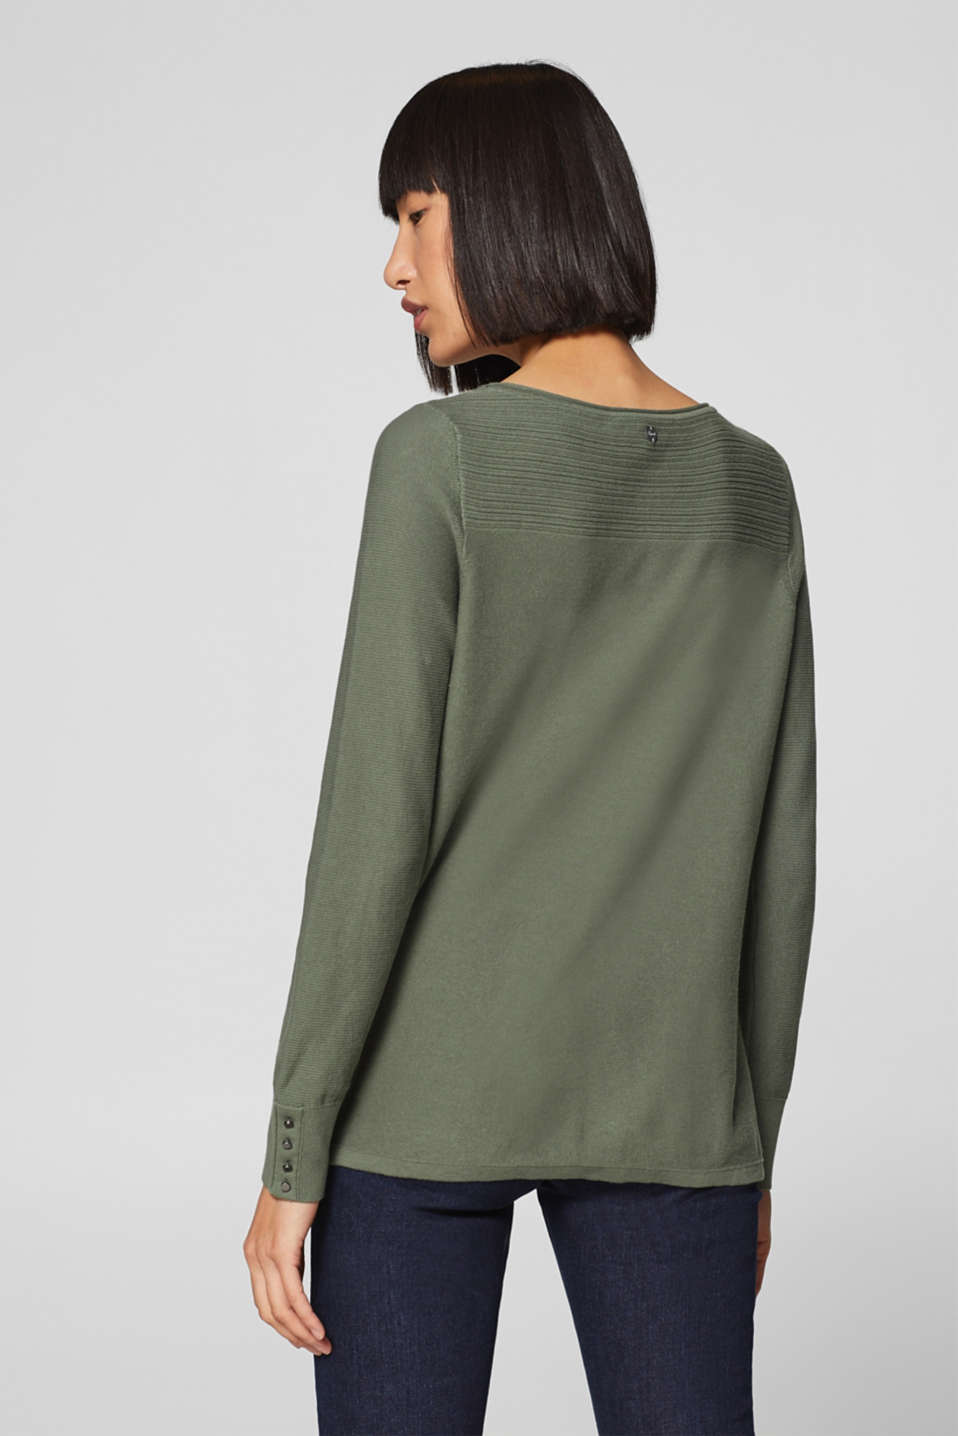 Jumper with a mix of textures, 100% cotton, KHAKI GREEN, detail image number 3